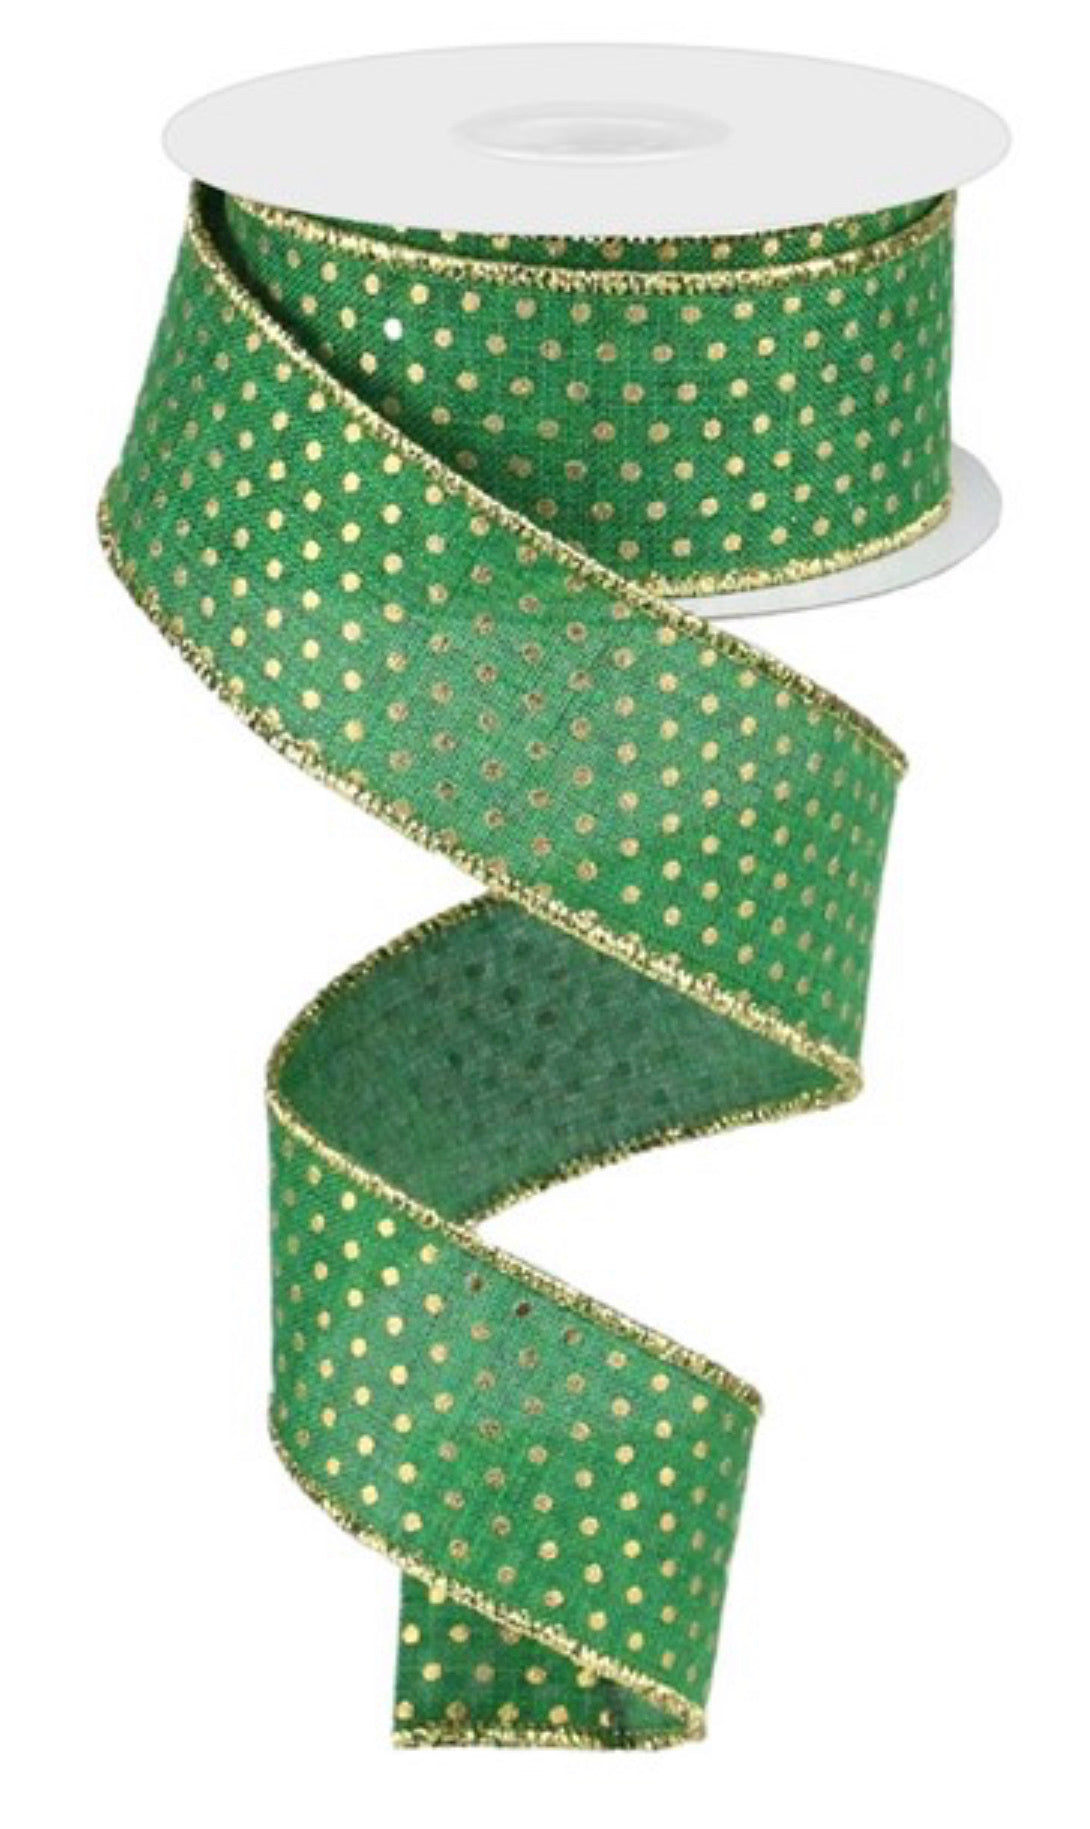 Emerald green with gold dots ribbon 1.5""